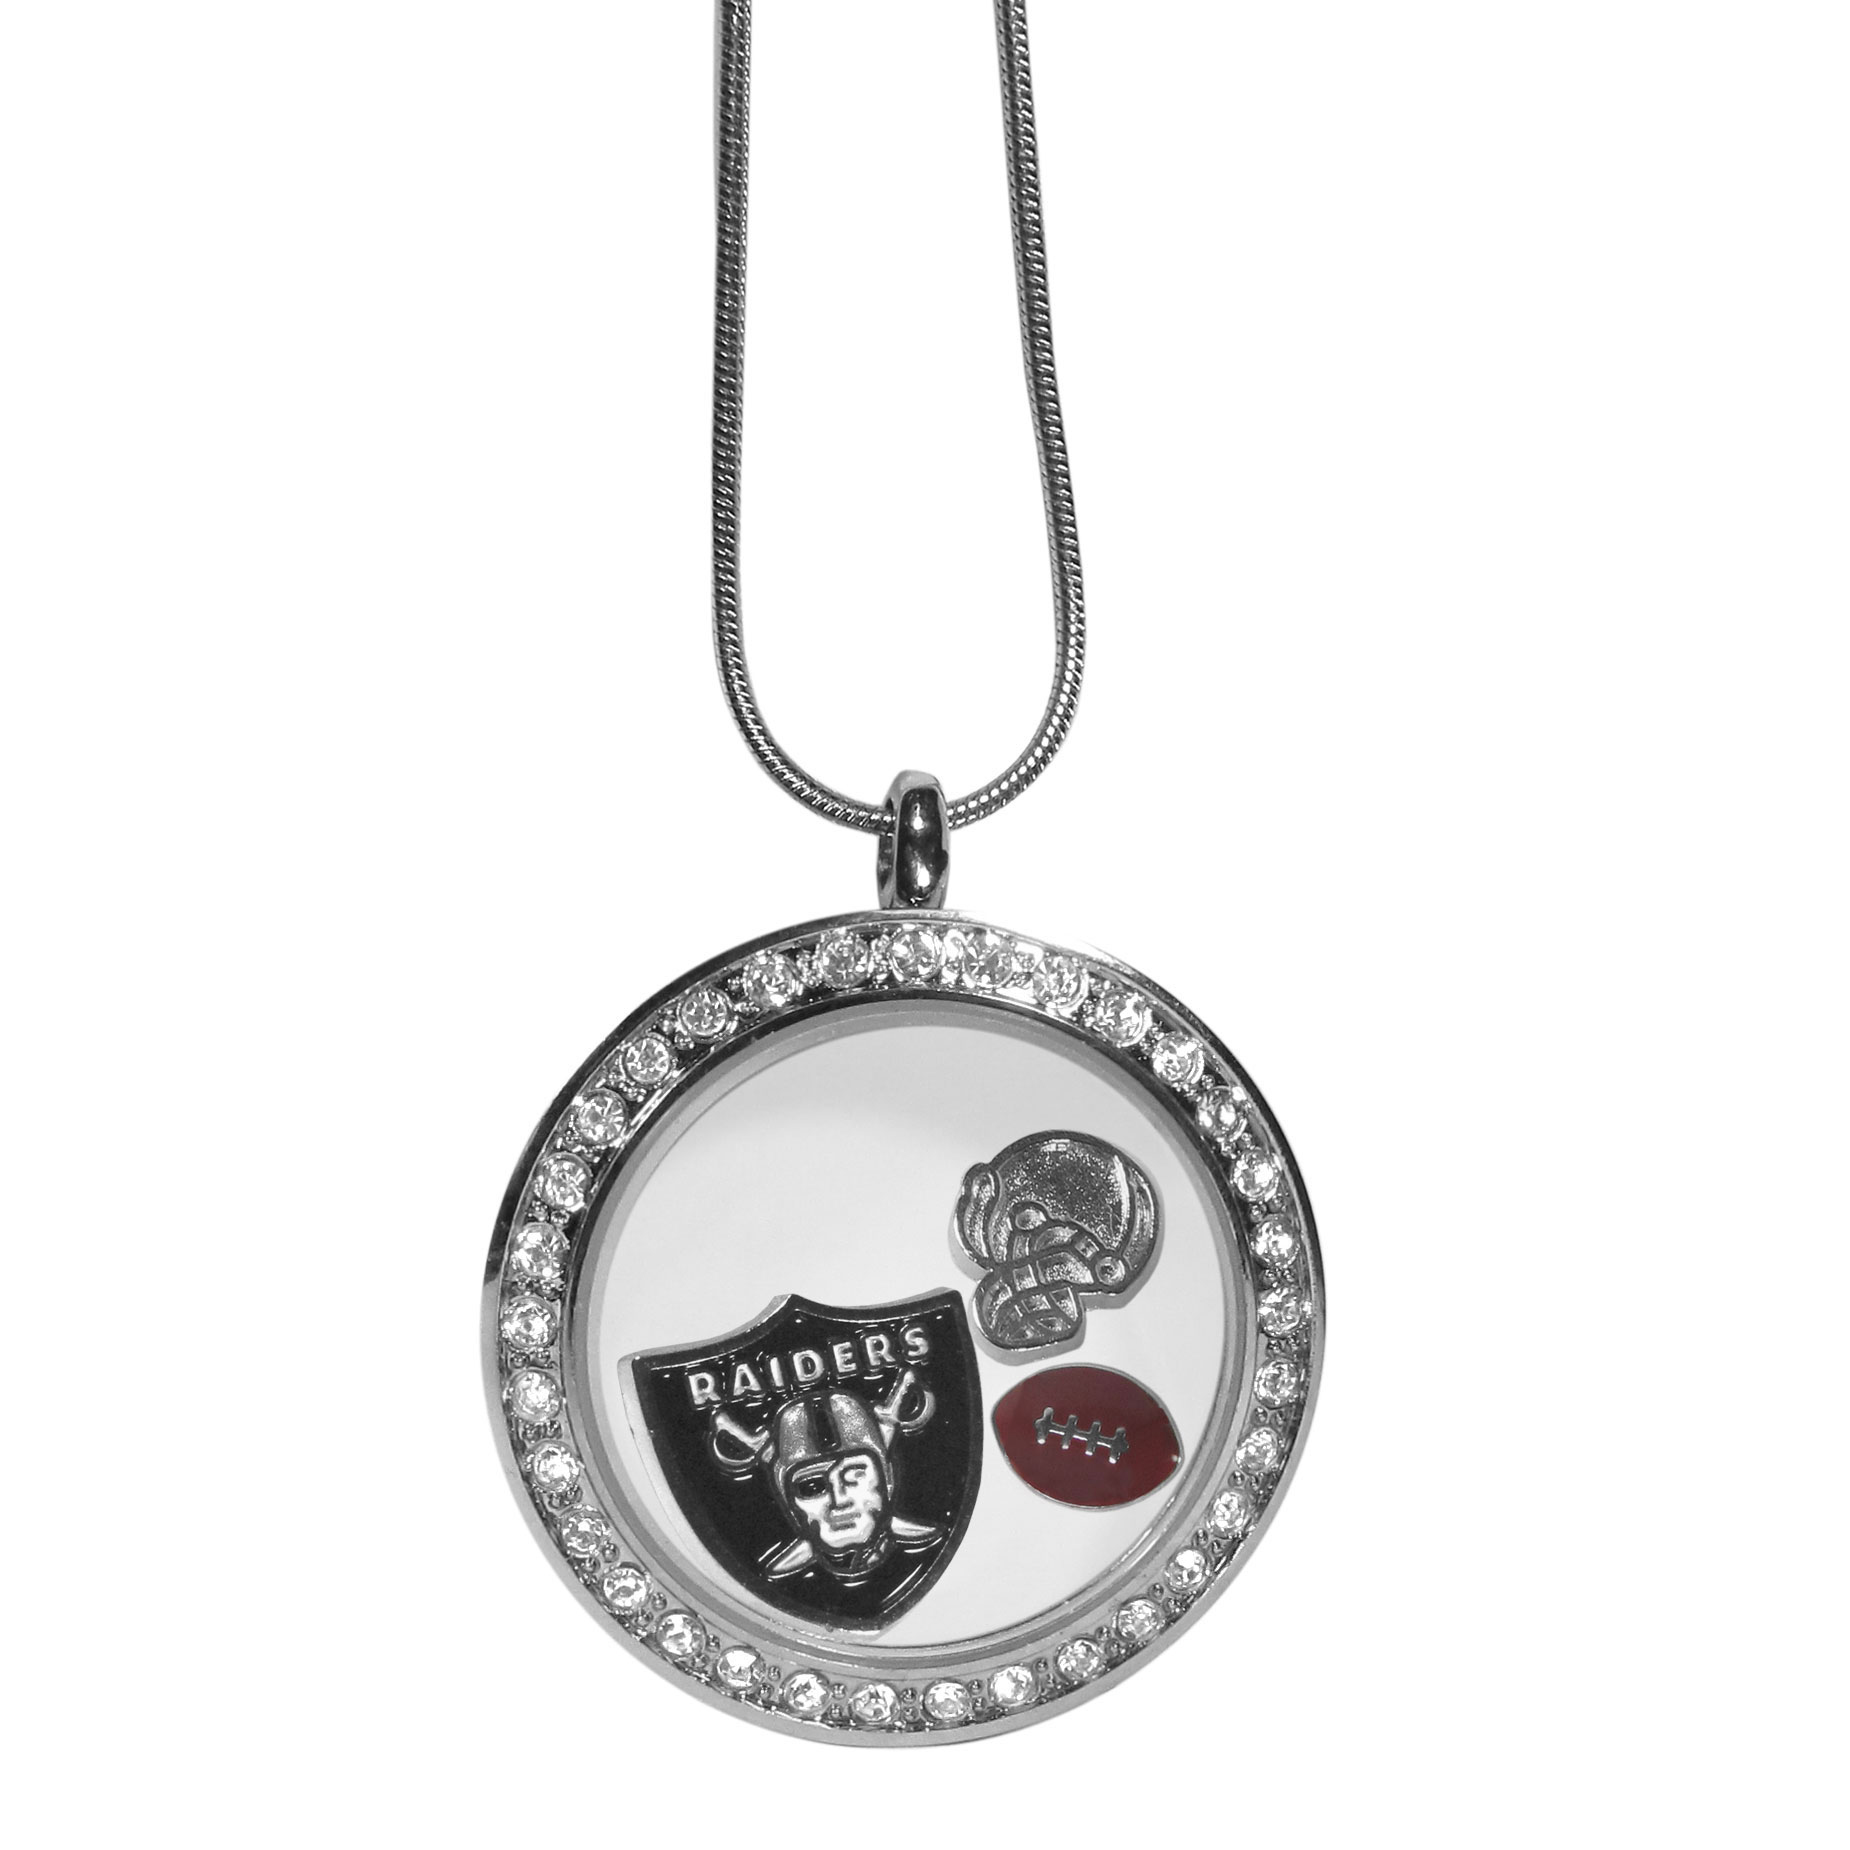 Oakland Raiders Locket Necklace - We have taken the classic floating charm locket and combined with licensed sports charms to create a must have fan necklace. The necklace comes with 3 charms; 1 Oakland Raiders charm, one football charm and one helmet charm. The charms float in a beautiful locket that has a strong magnetic closure with a rhinestone border. The locket comes on an 18 inch snake chain with 2 inch extender.